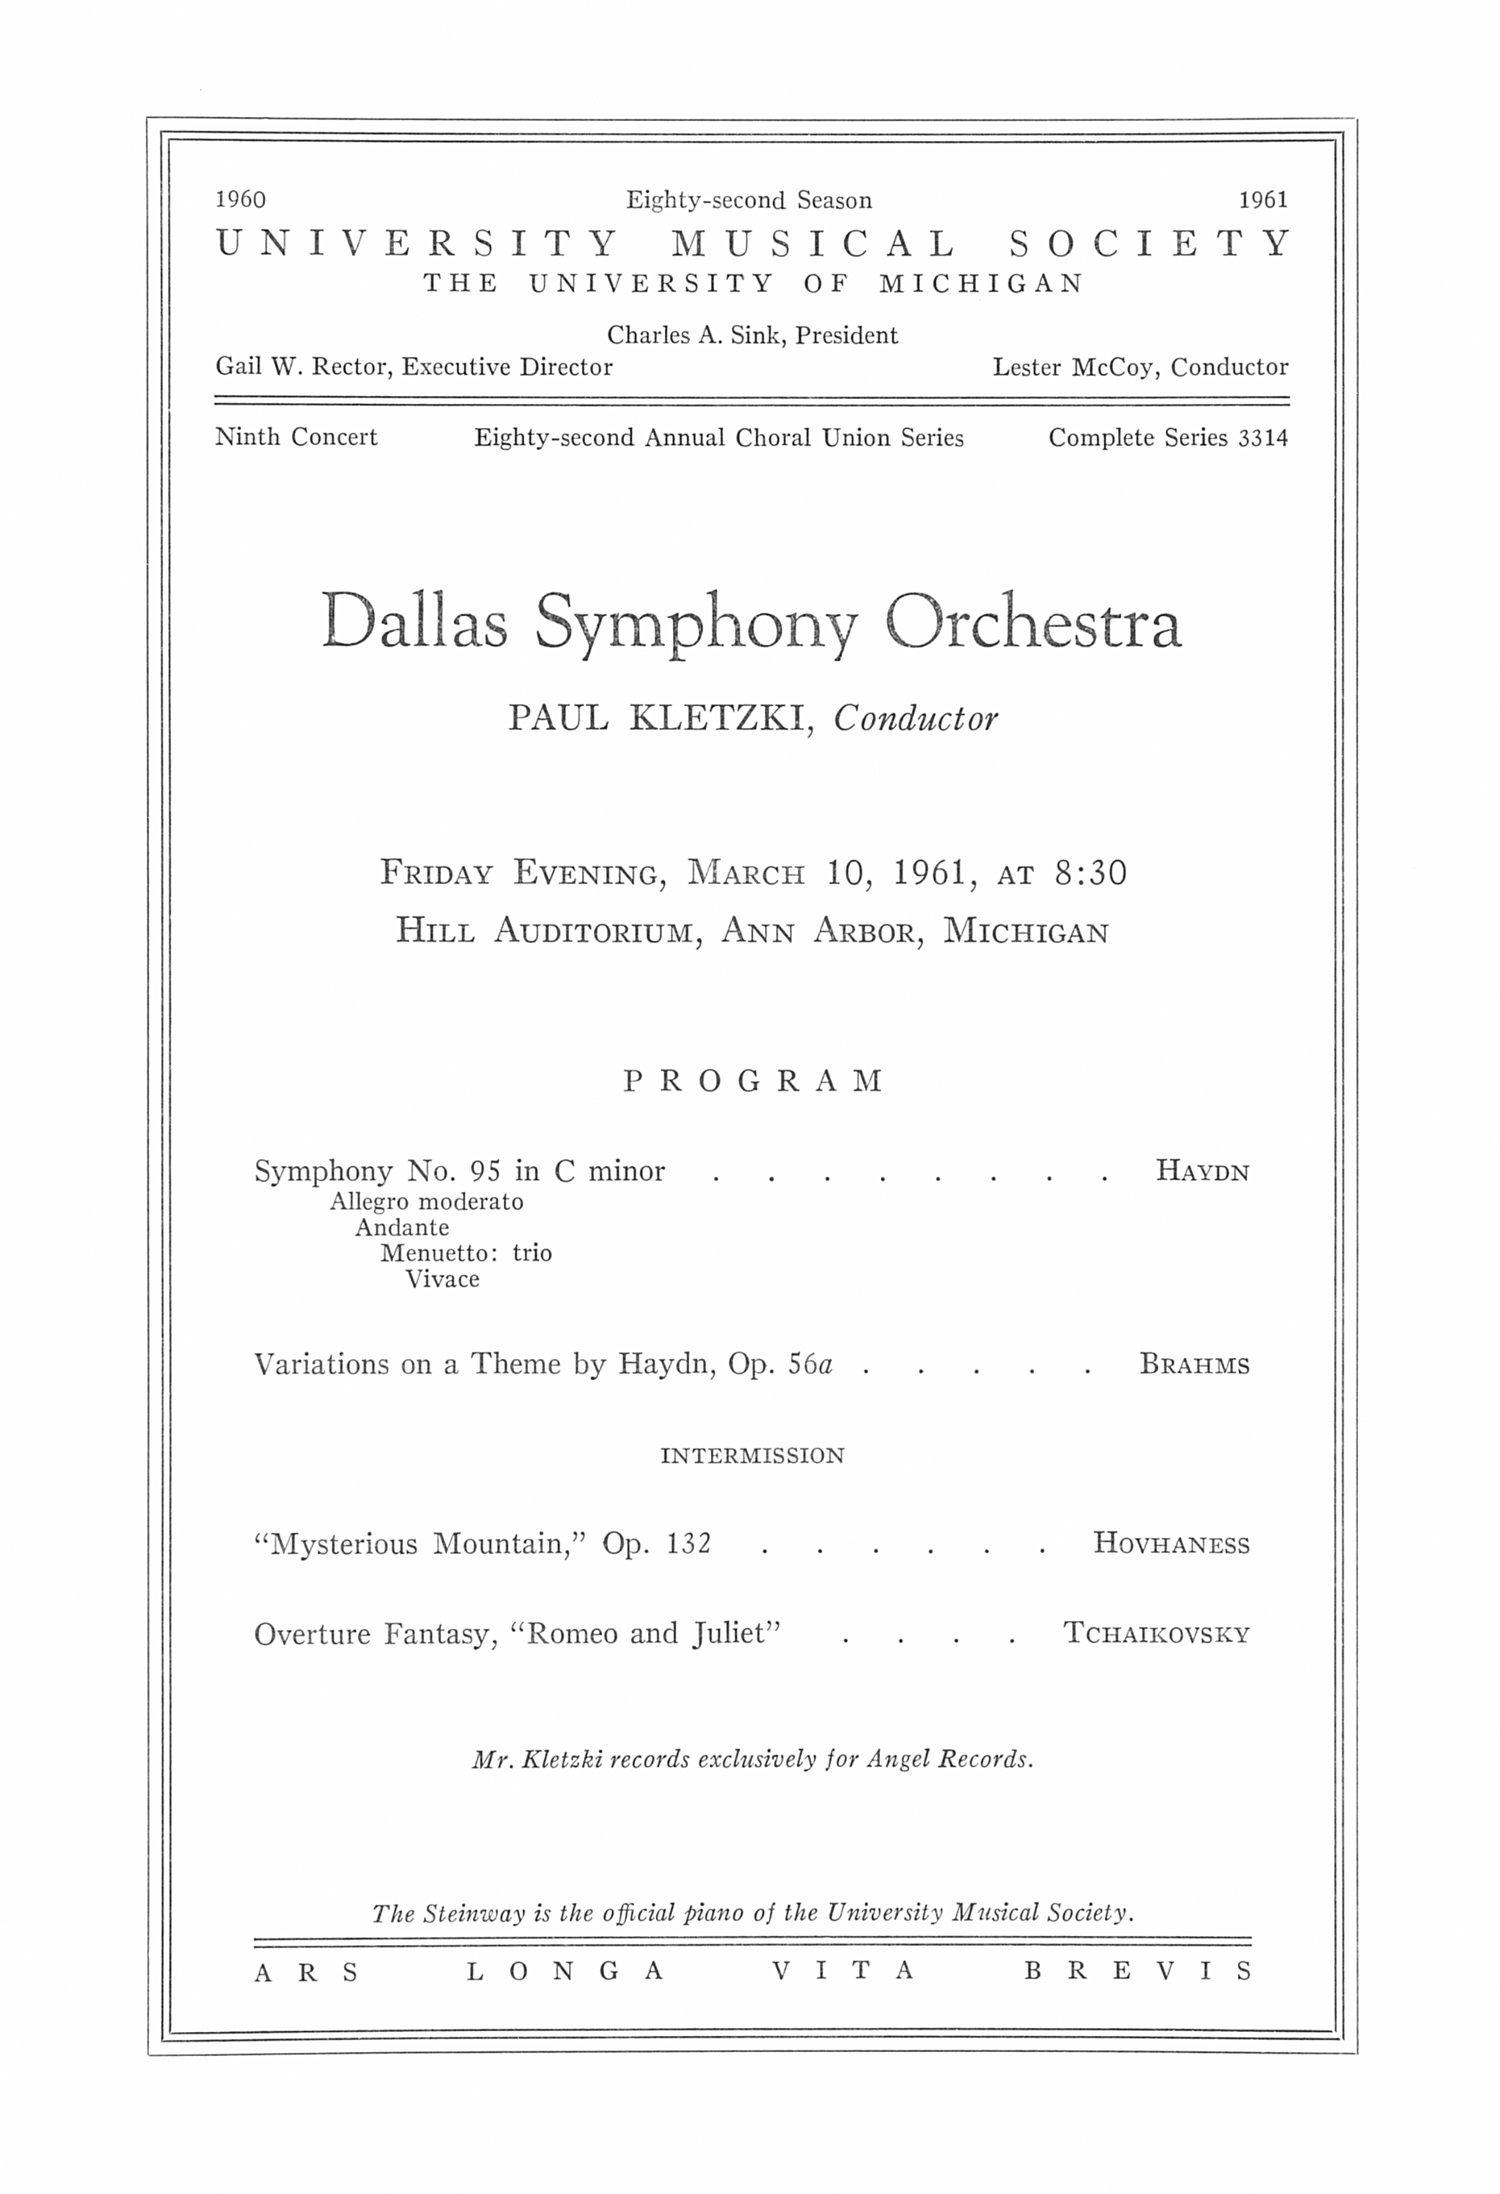 UMS Concert Program, March 10, 1961: Dallas Symphony Orchestra --  image